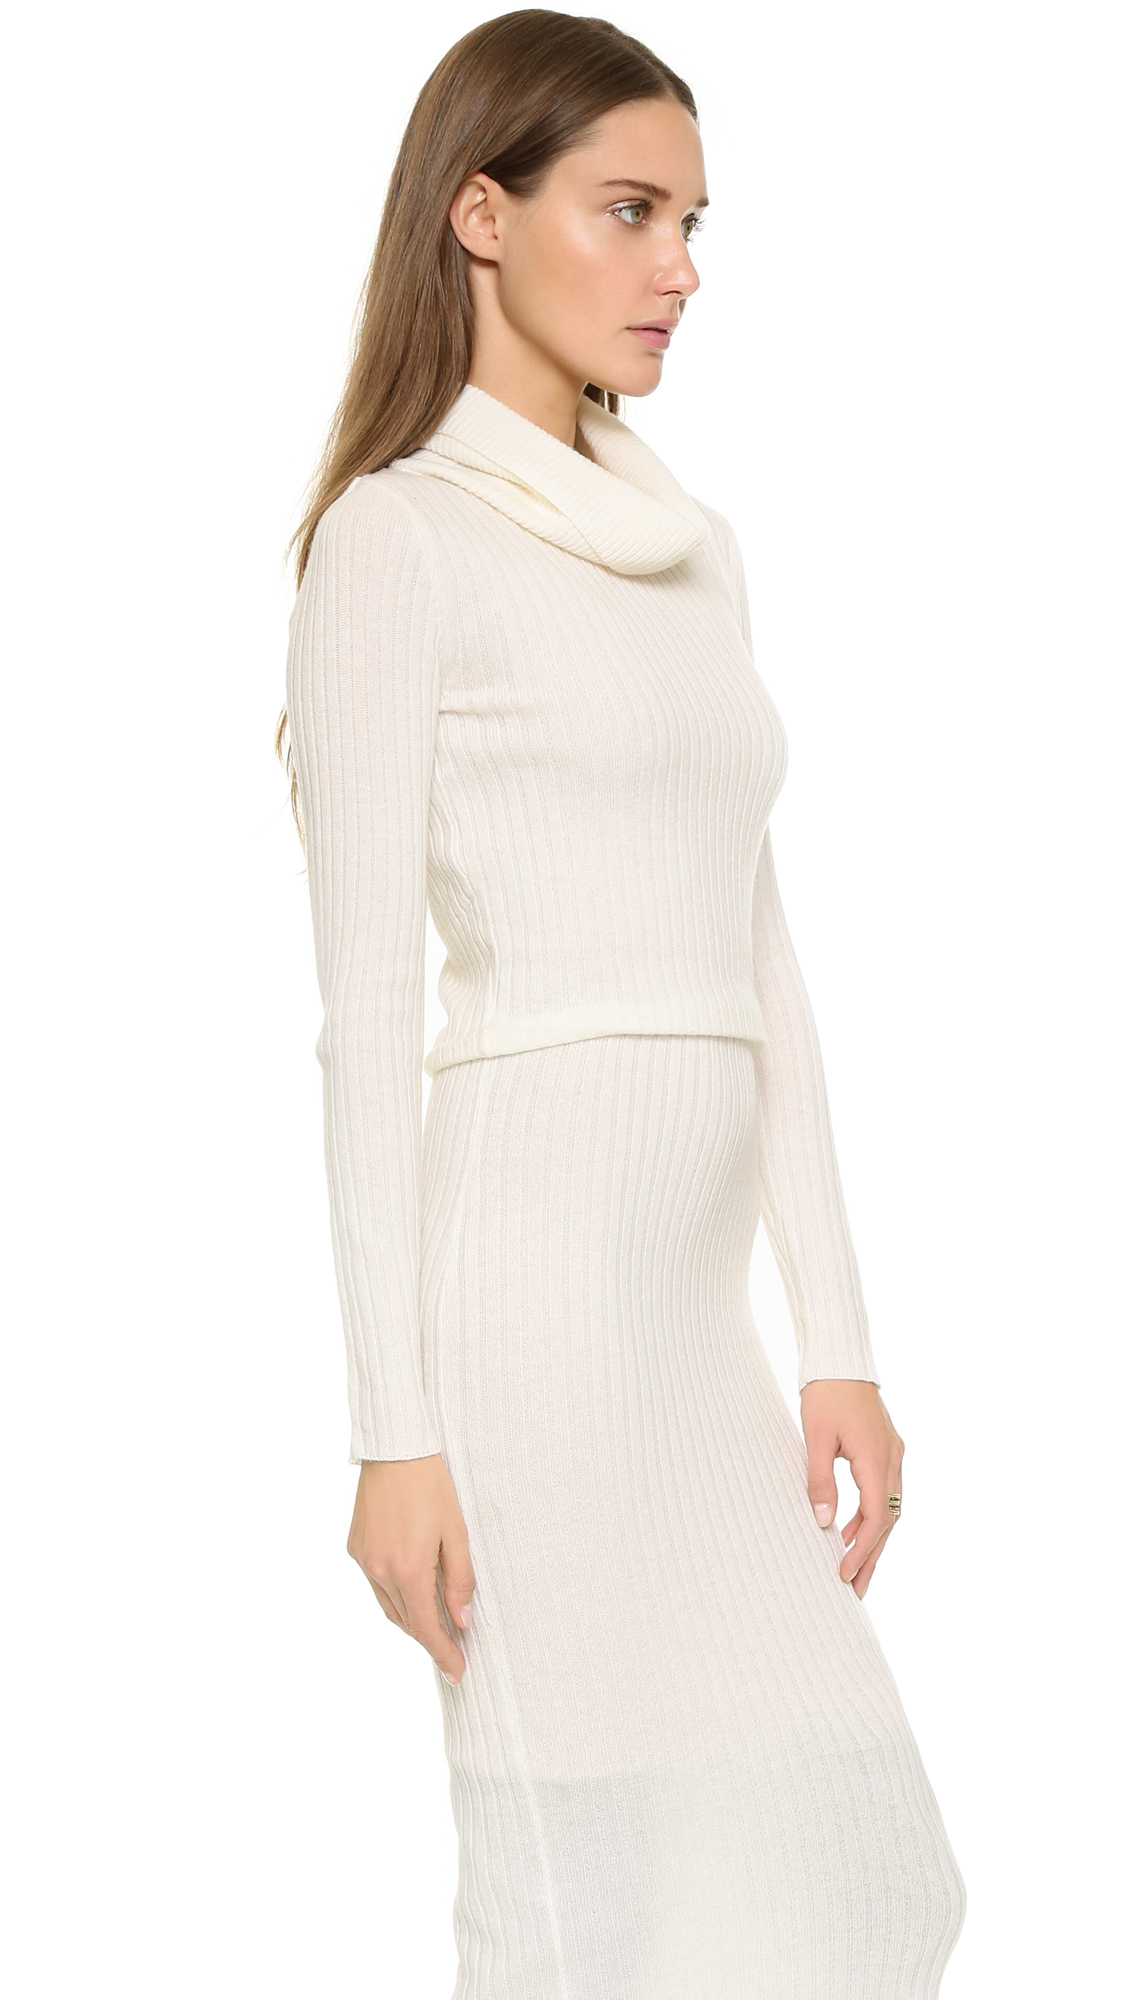 Alice   olivia Hailee Turtleneck Sweater Dress - Cream in Natural ...